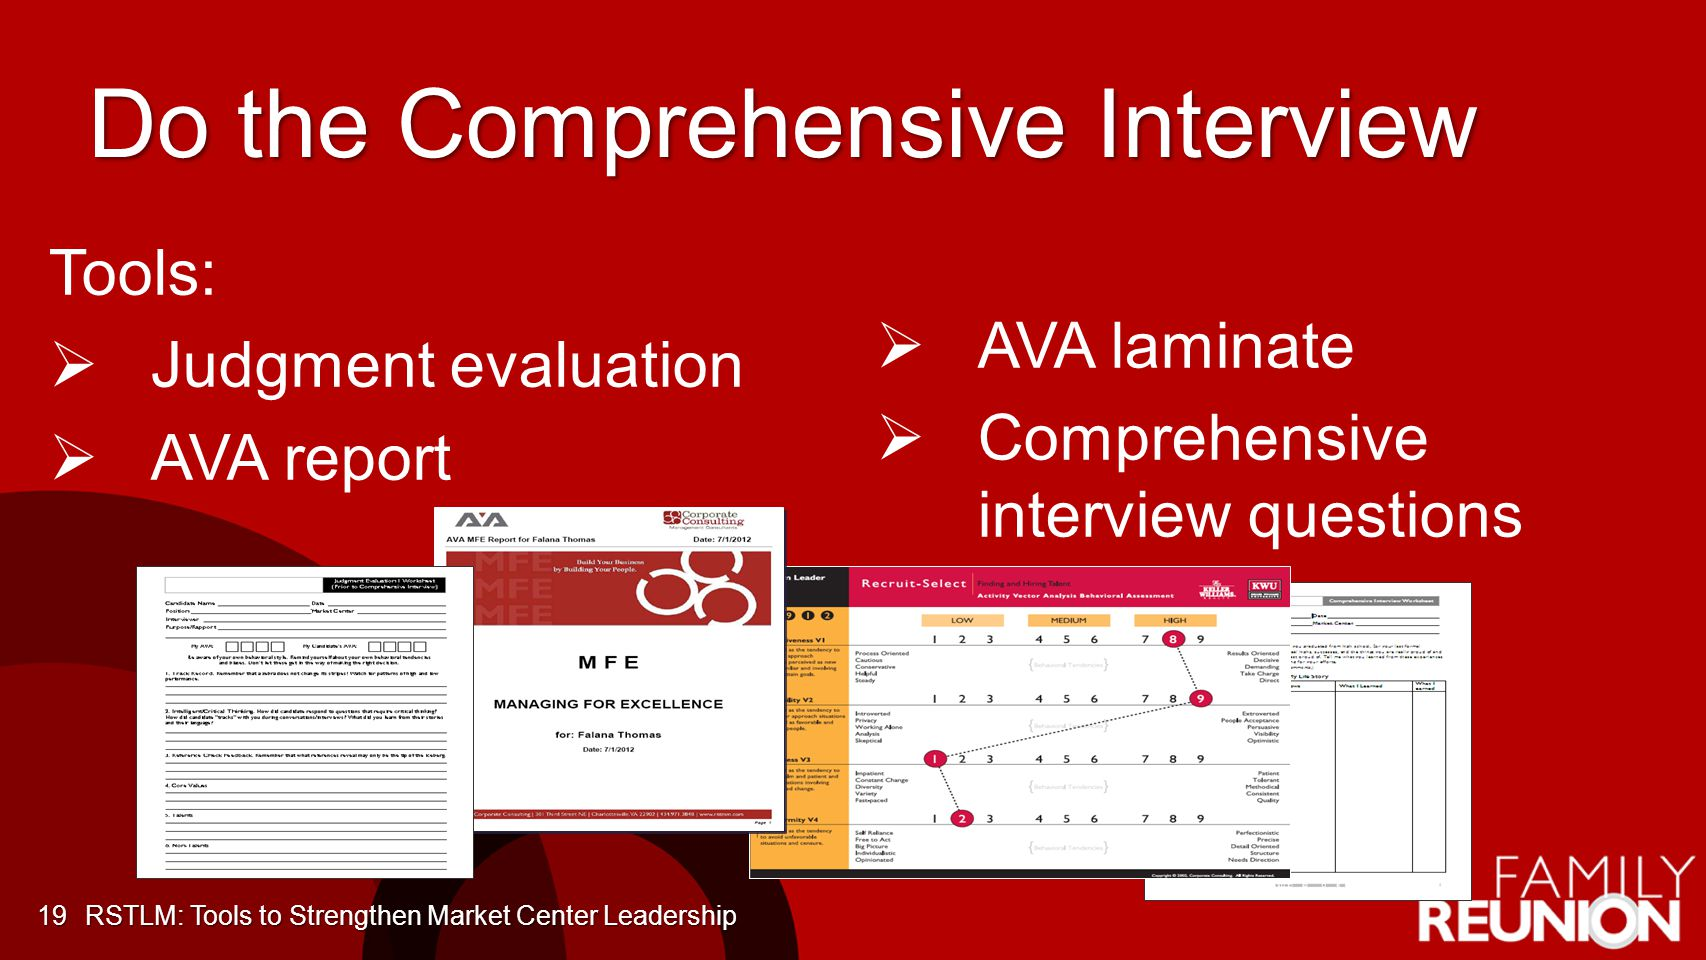 Do the Comprehensive Interview 19 Tools: Judgment evaluation AVA report AVA laminate Comprehensive interview questions RSTLM: Tools to Strengthen Market Center Leadership